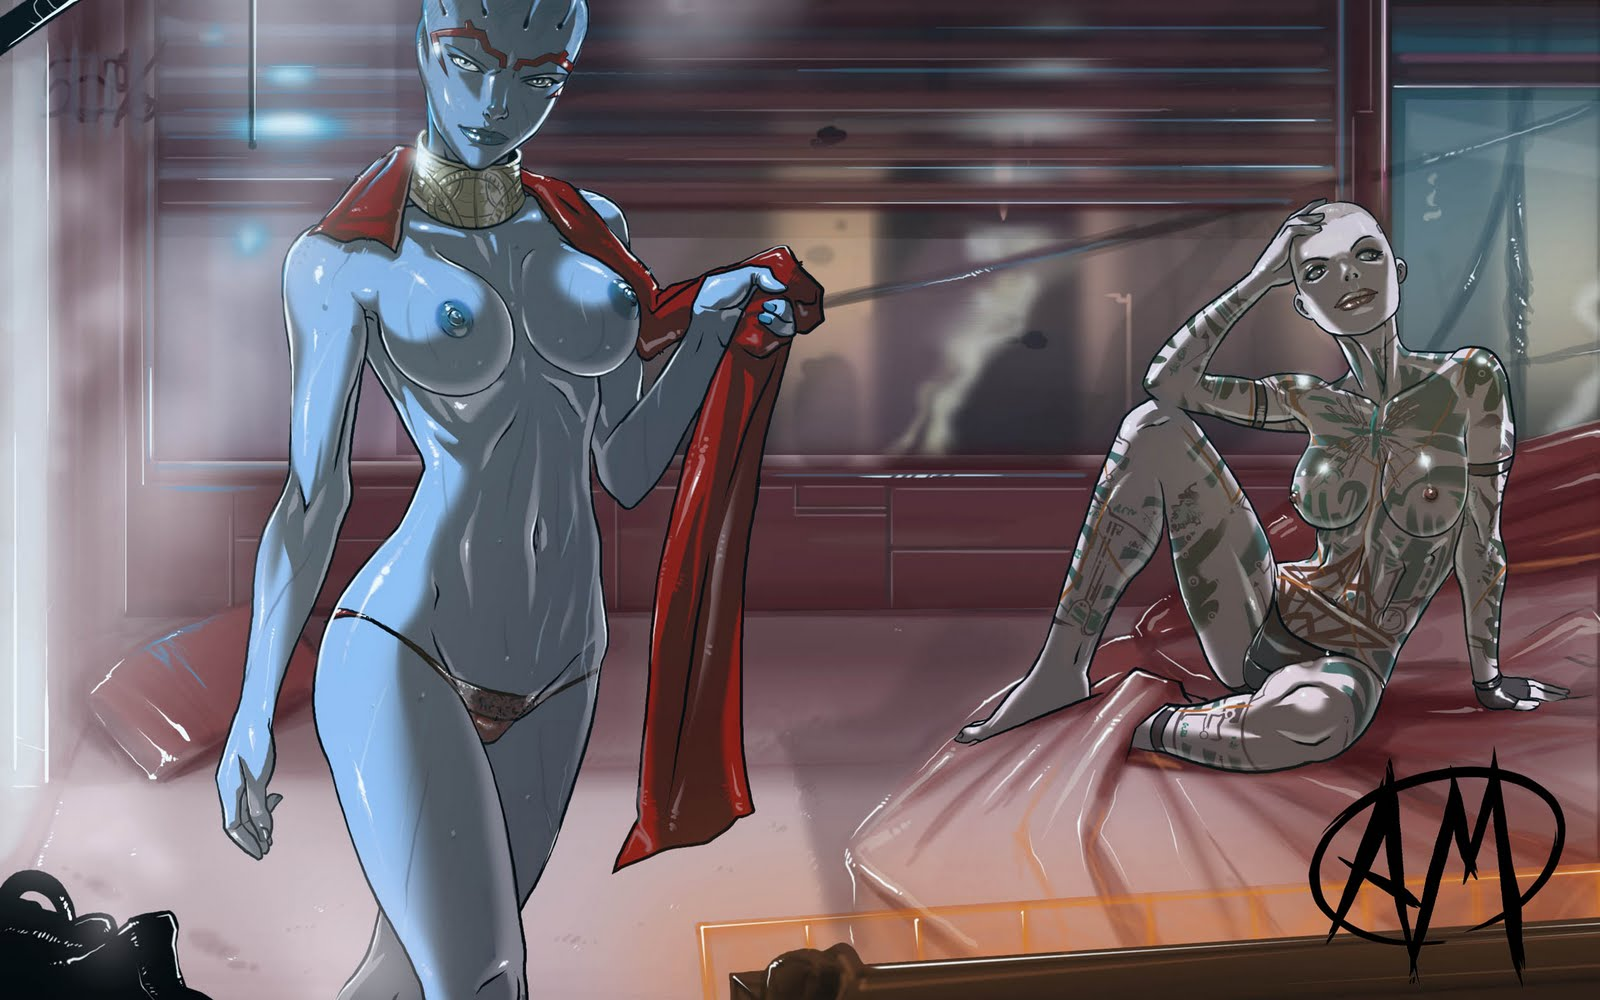 Mass effect erotic sex art anime videos